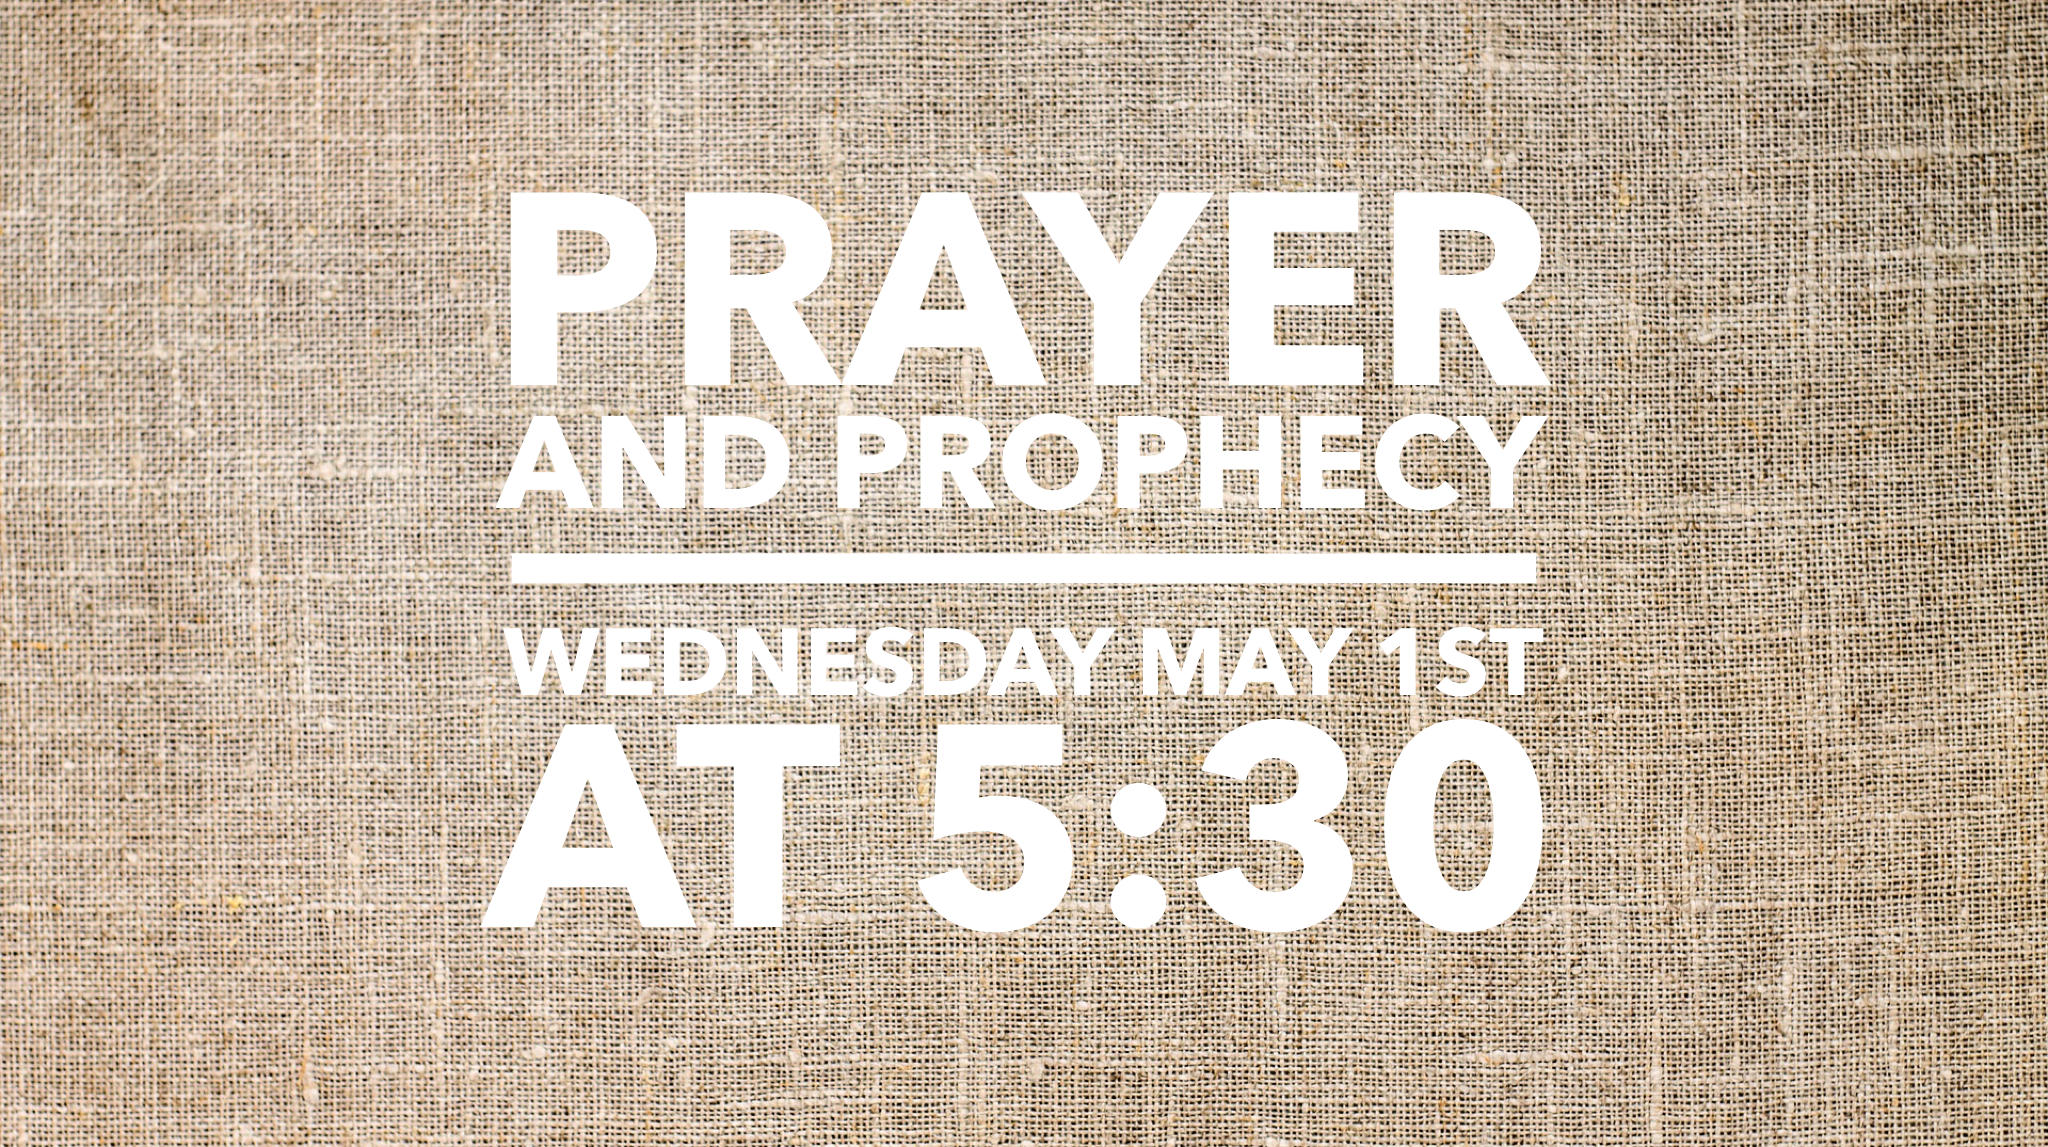 16_9 Prayer and Prophesy March (1).png